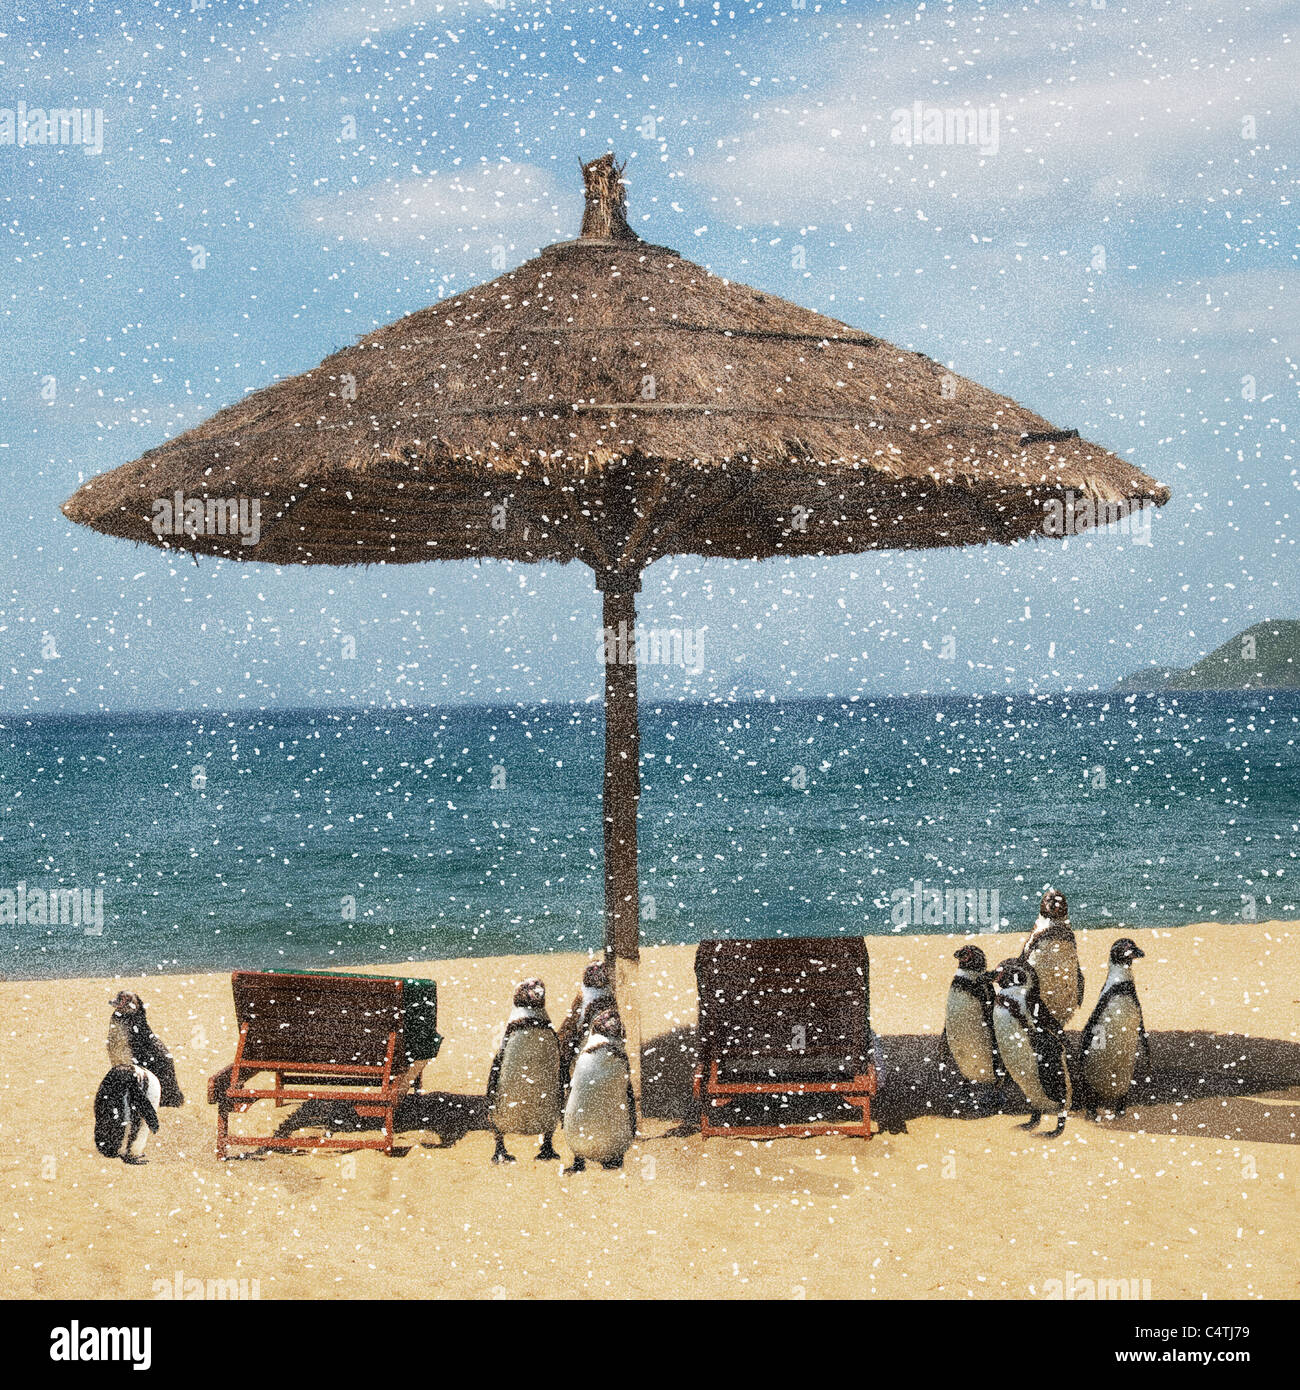 Snow falling on penguins on tropical beach - Stock Image